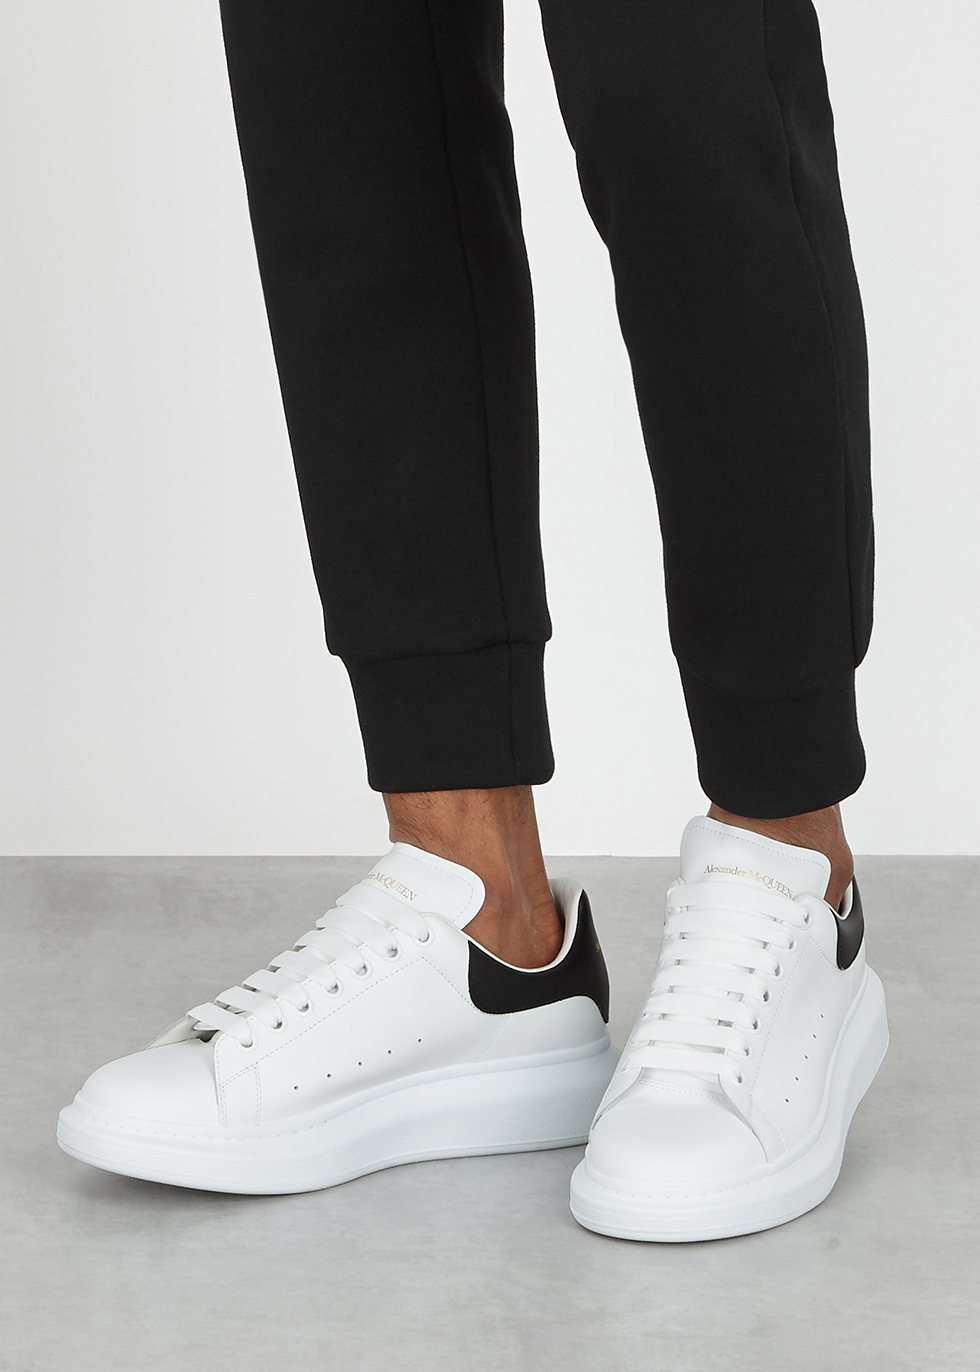 Alexander McQueen Larry white leather